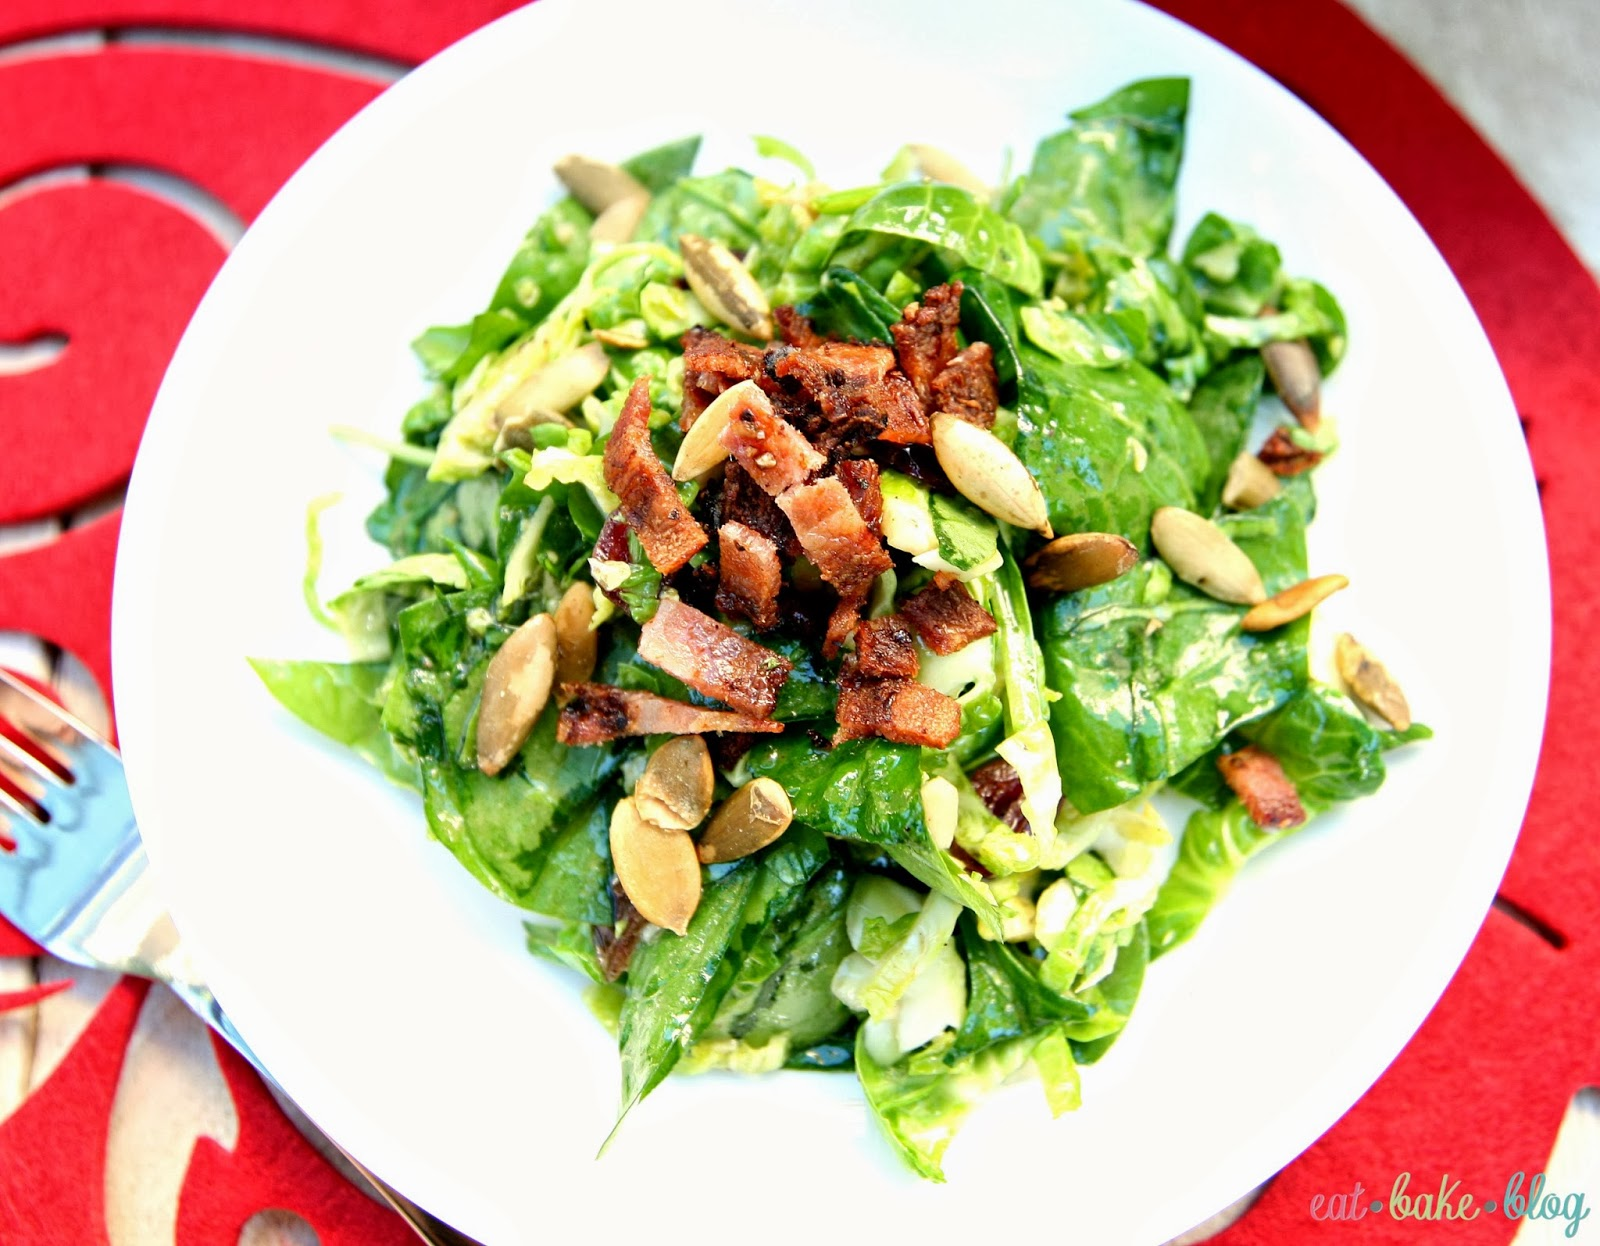 #lovehealthyme #wwsponsored easy brussels sprouts salad best brussels sprouts recipe healthy salad weight watchers simple start easy weeknight dinner recipe